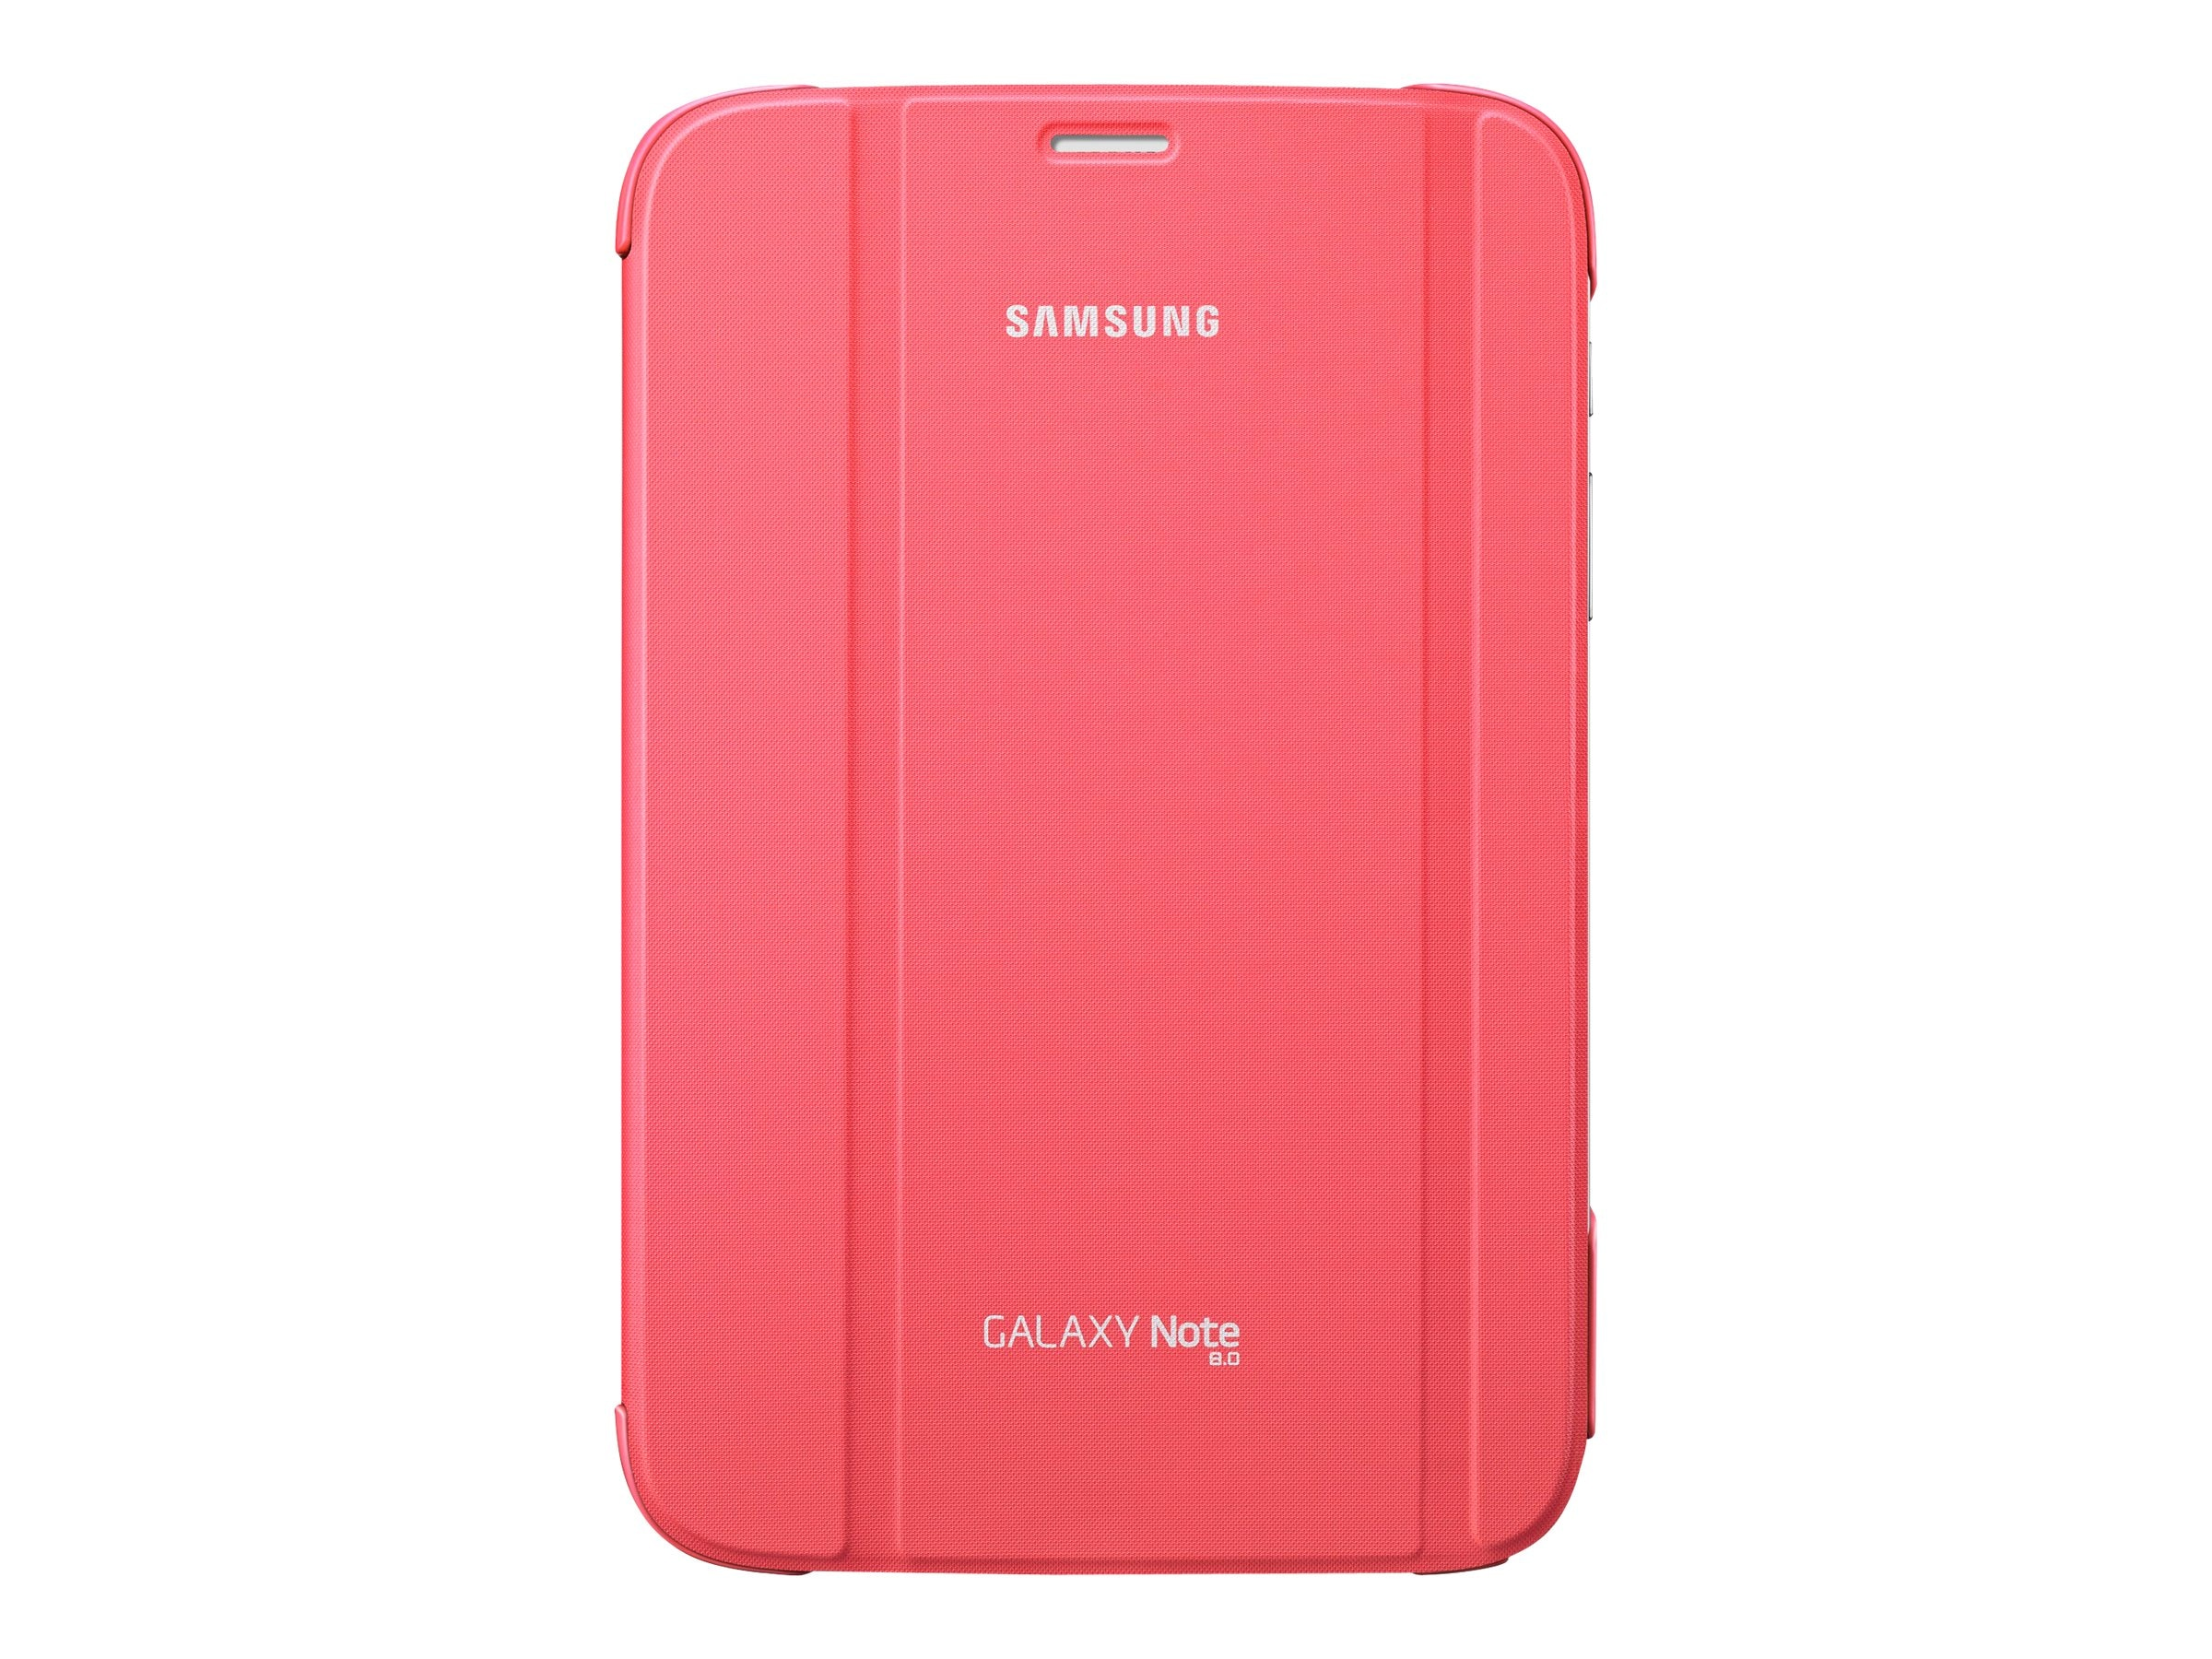 Samsung Book Cover for Galaxy Note 8.0, Pink, EF-BN510BPEGUJ, 15497161, Carrying Cases - Tablets & eReaders